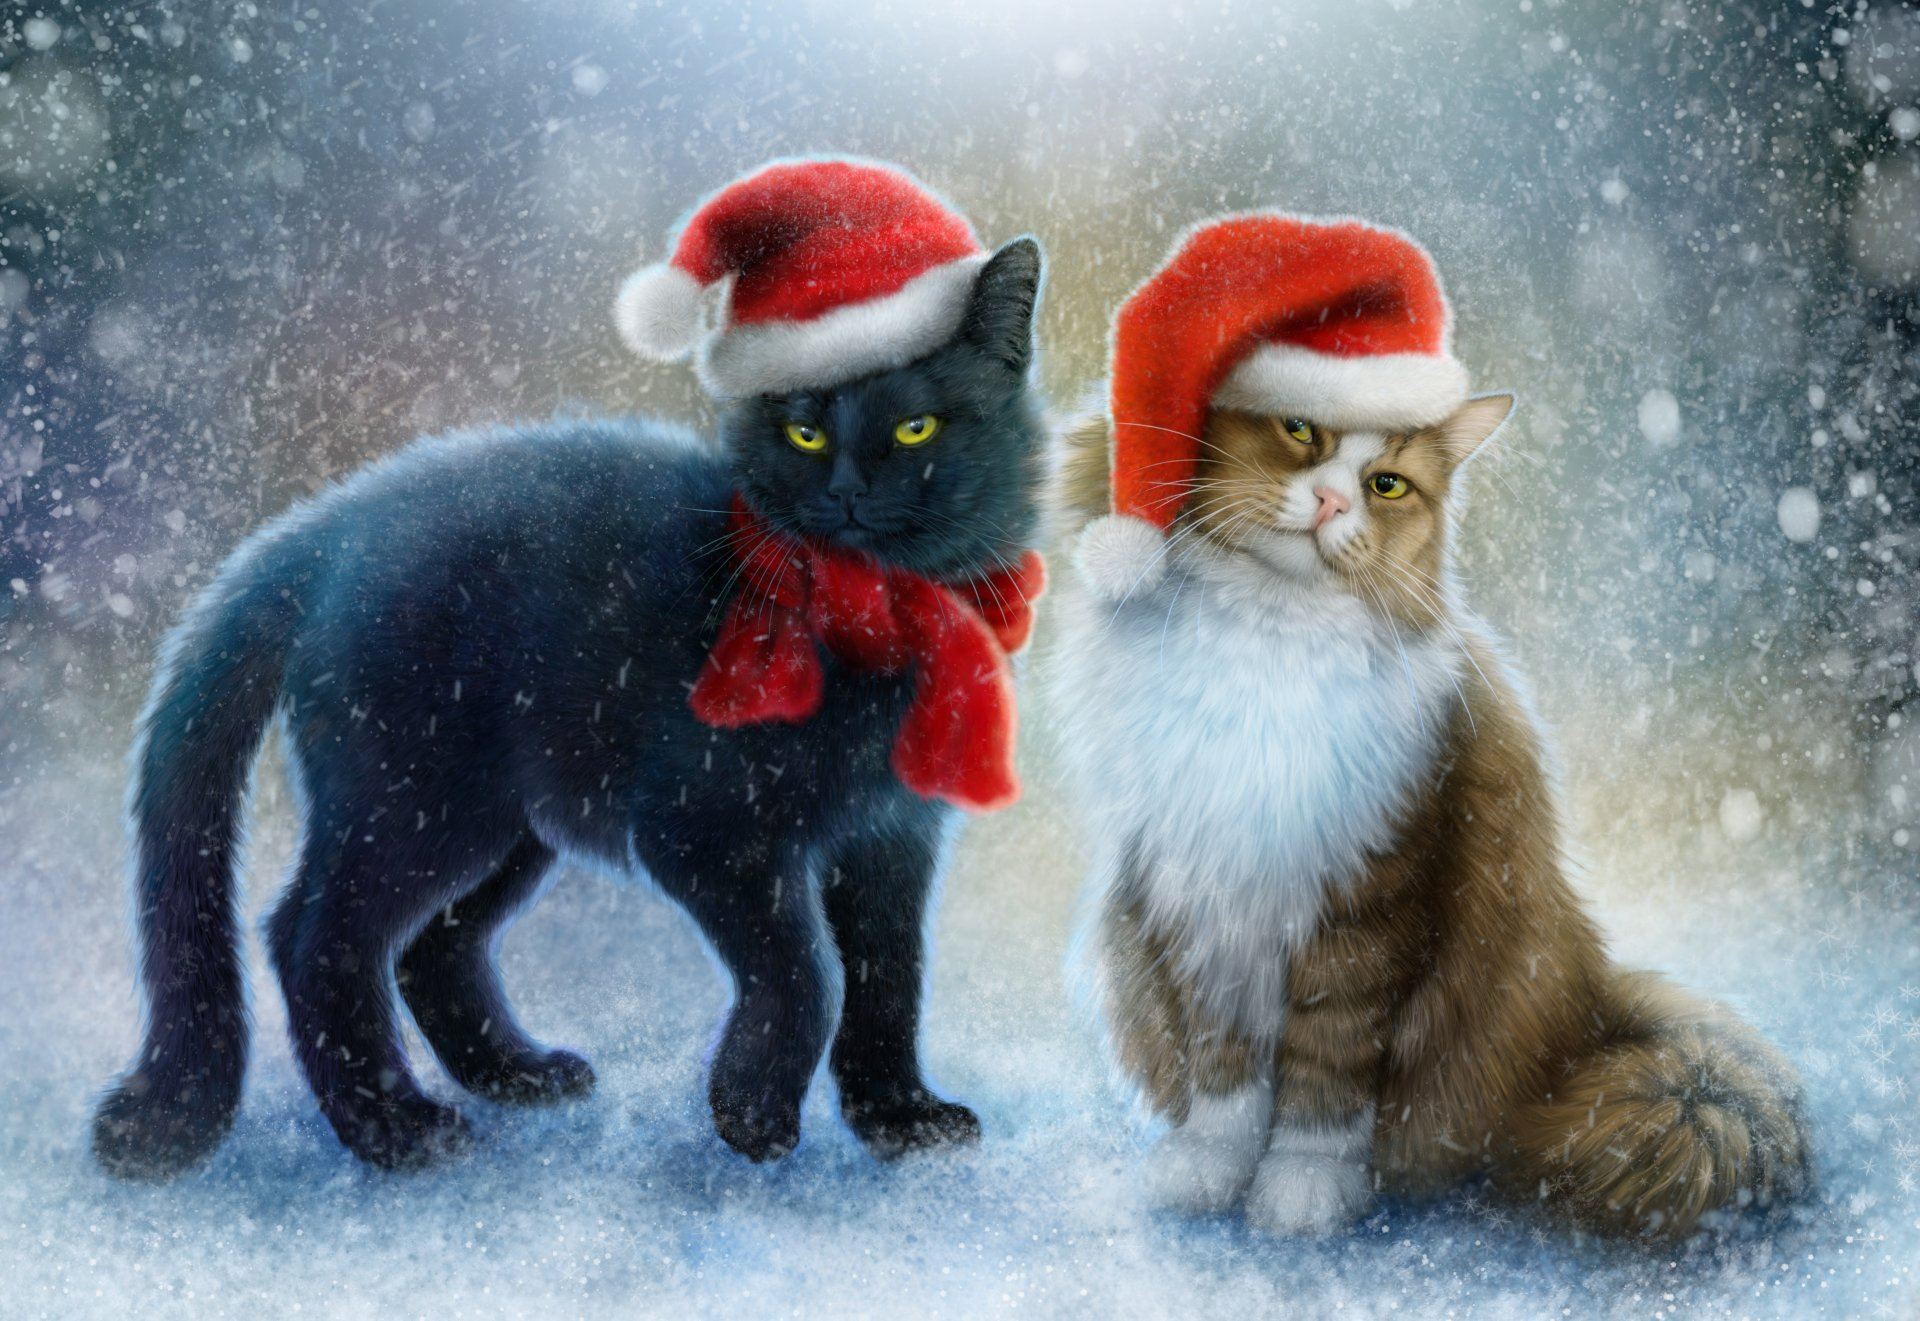 Holiday - Christmas  Artistic Holiday Cat Snow Snowfall Santa Hat Scarf Wallpaper